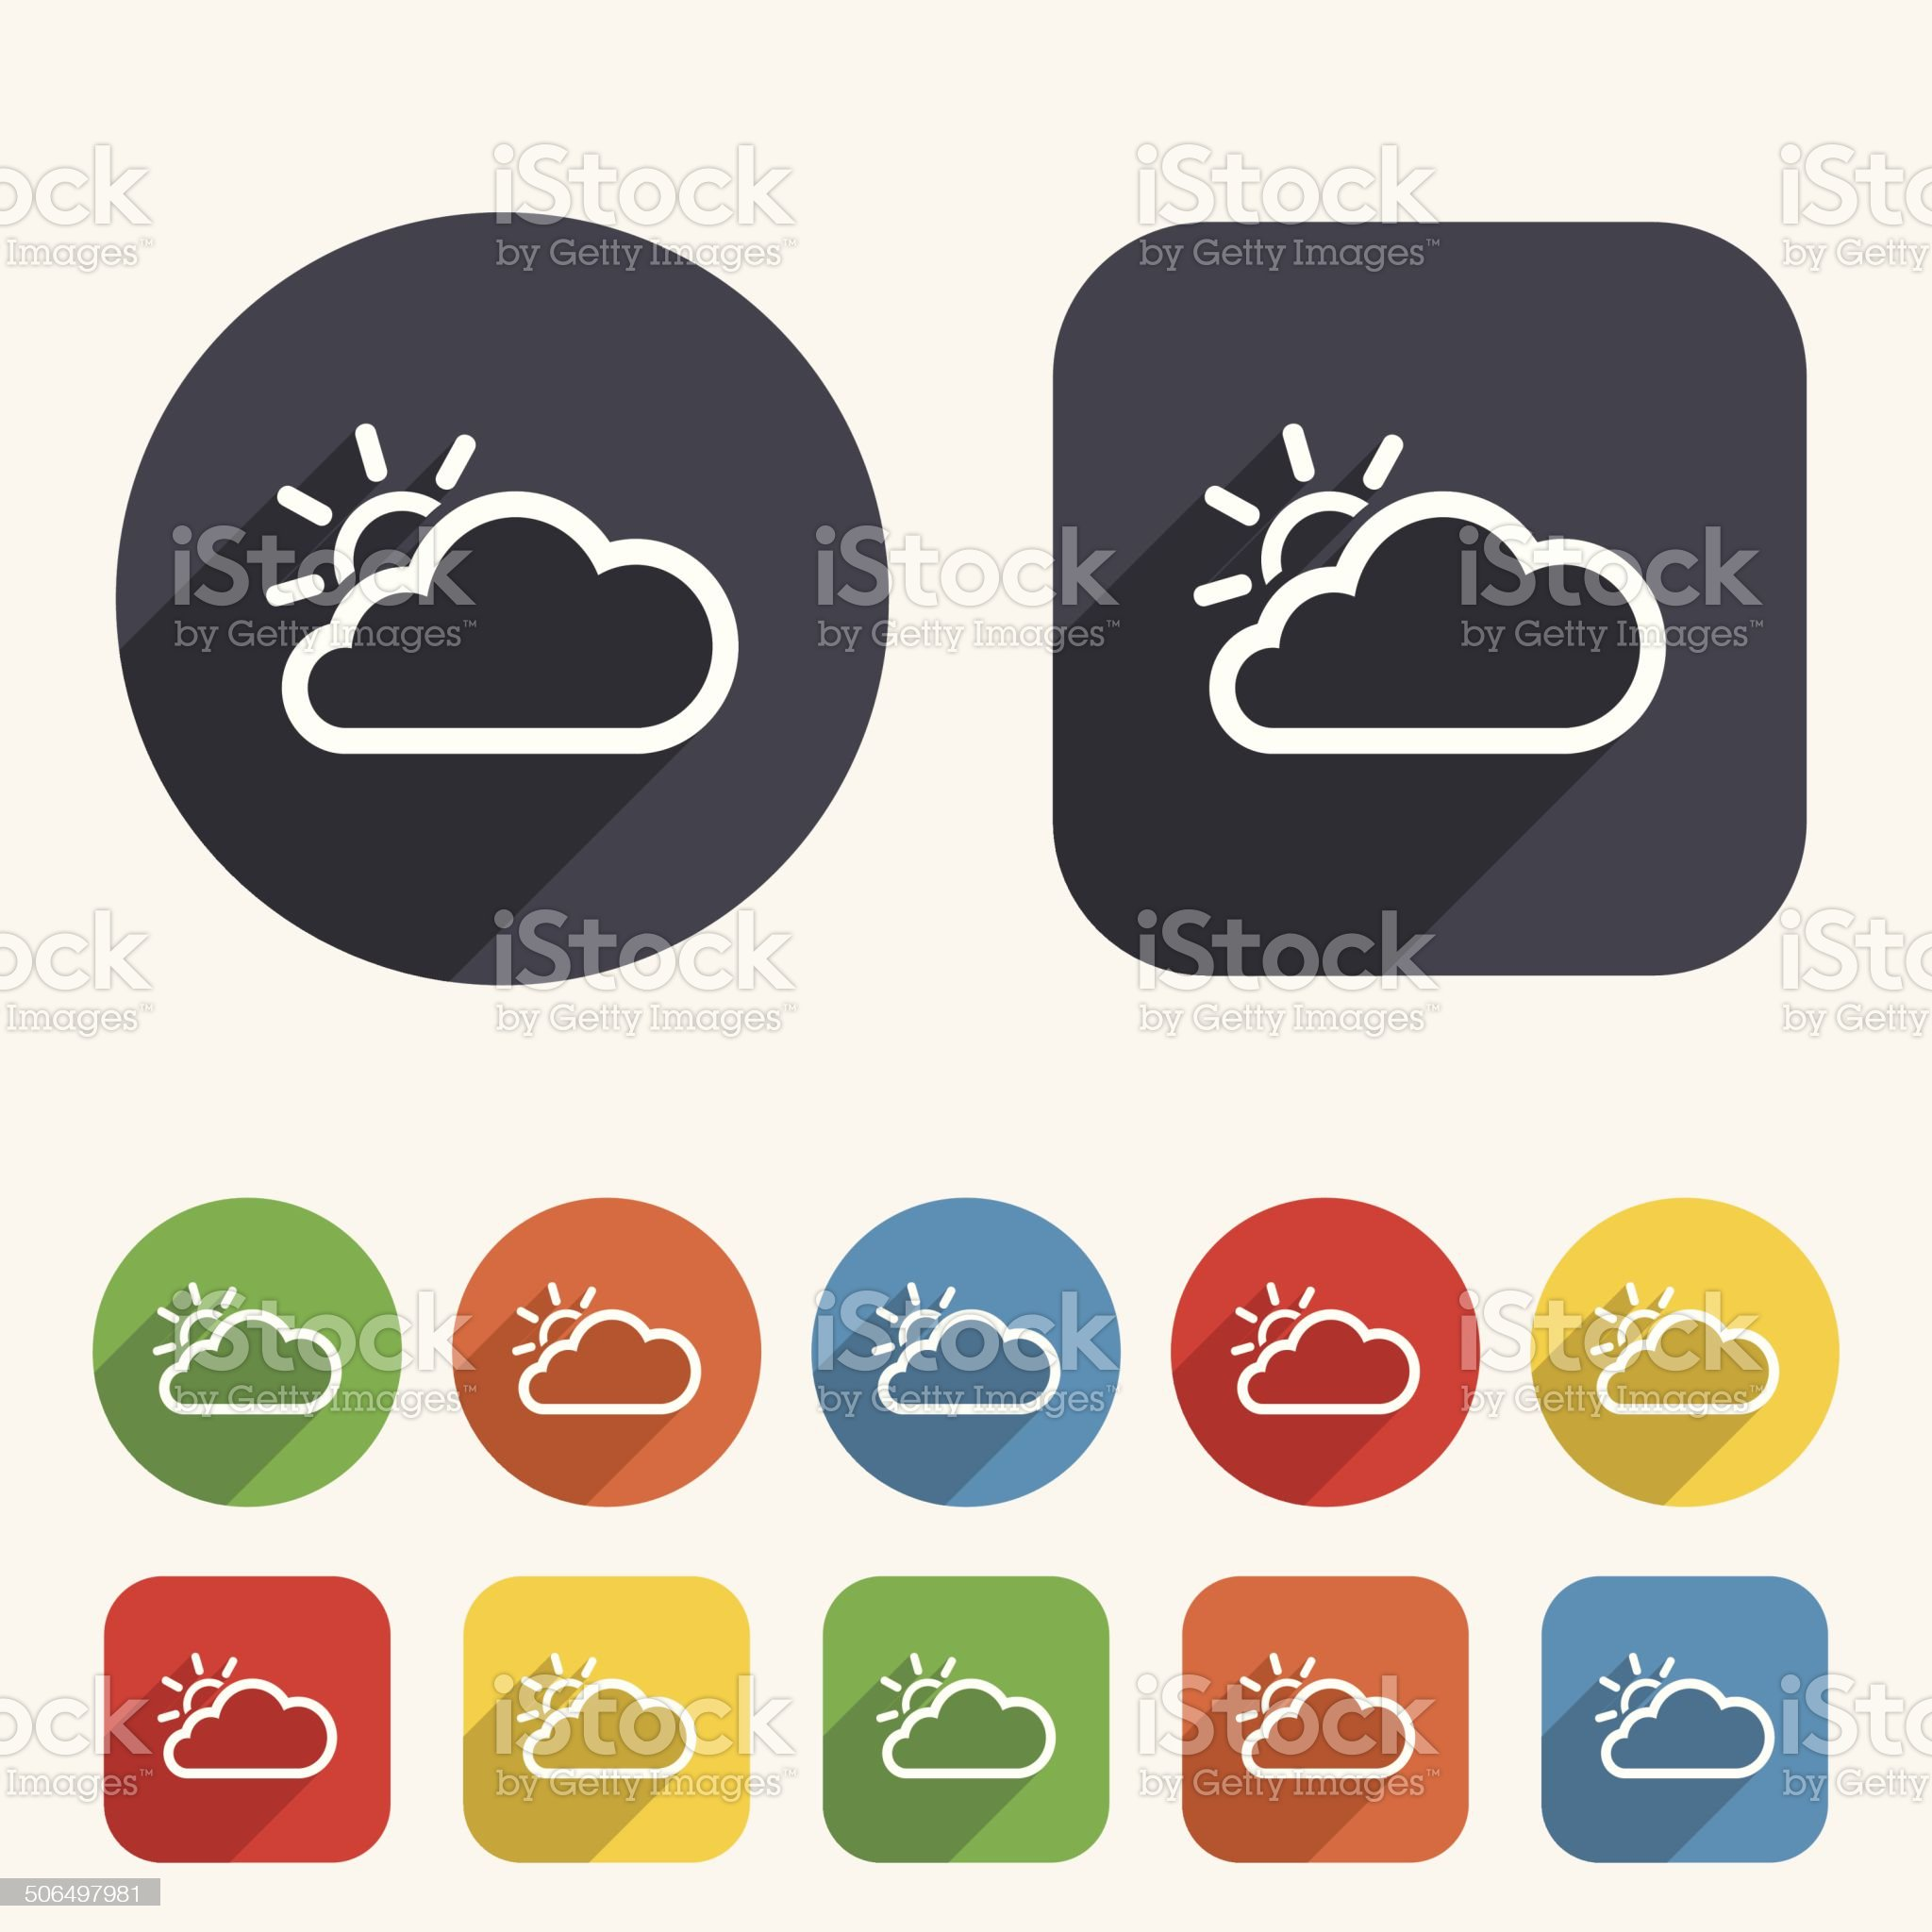 Cloud and sun sign icon. Weather symbol. royalty-free stock vector art